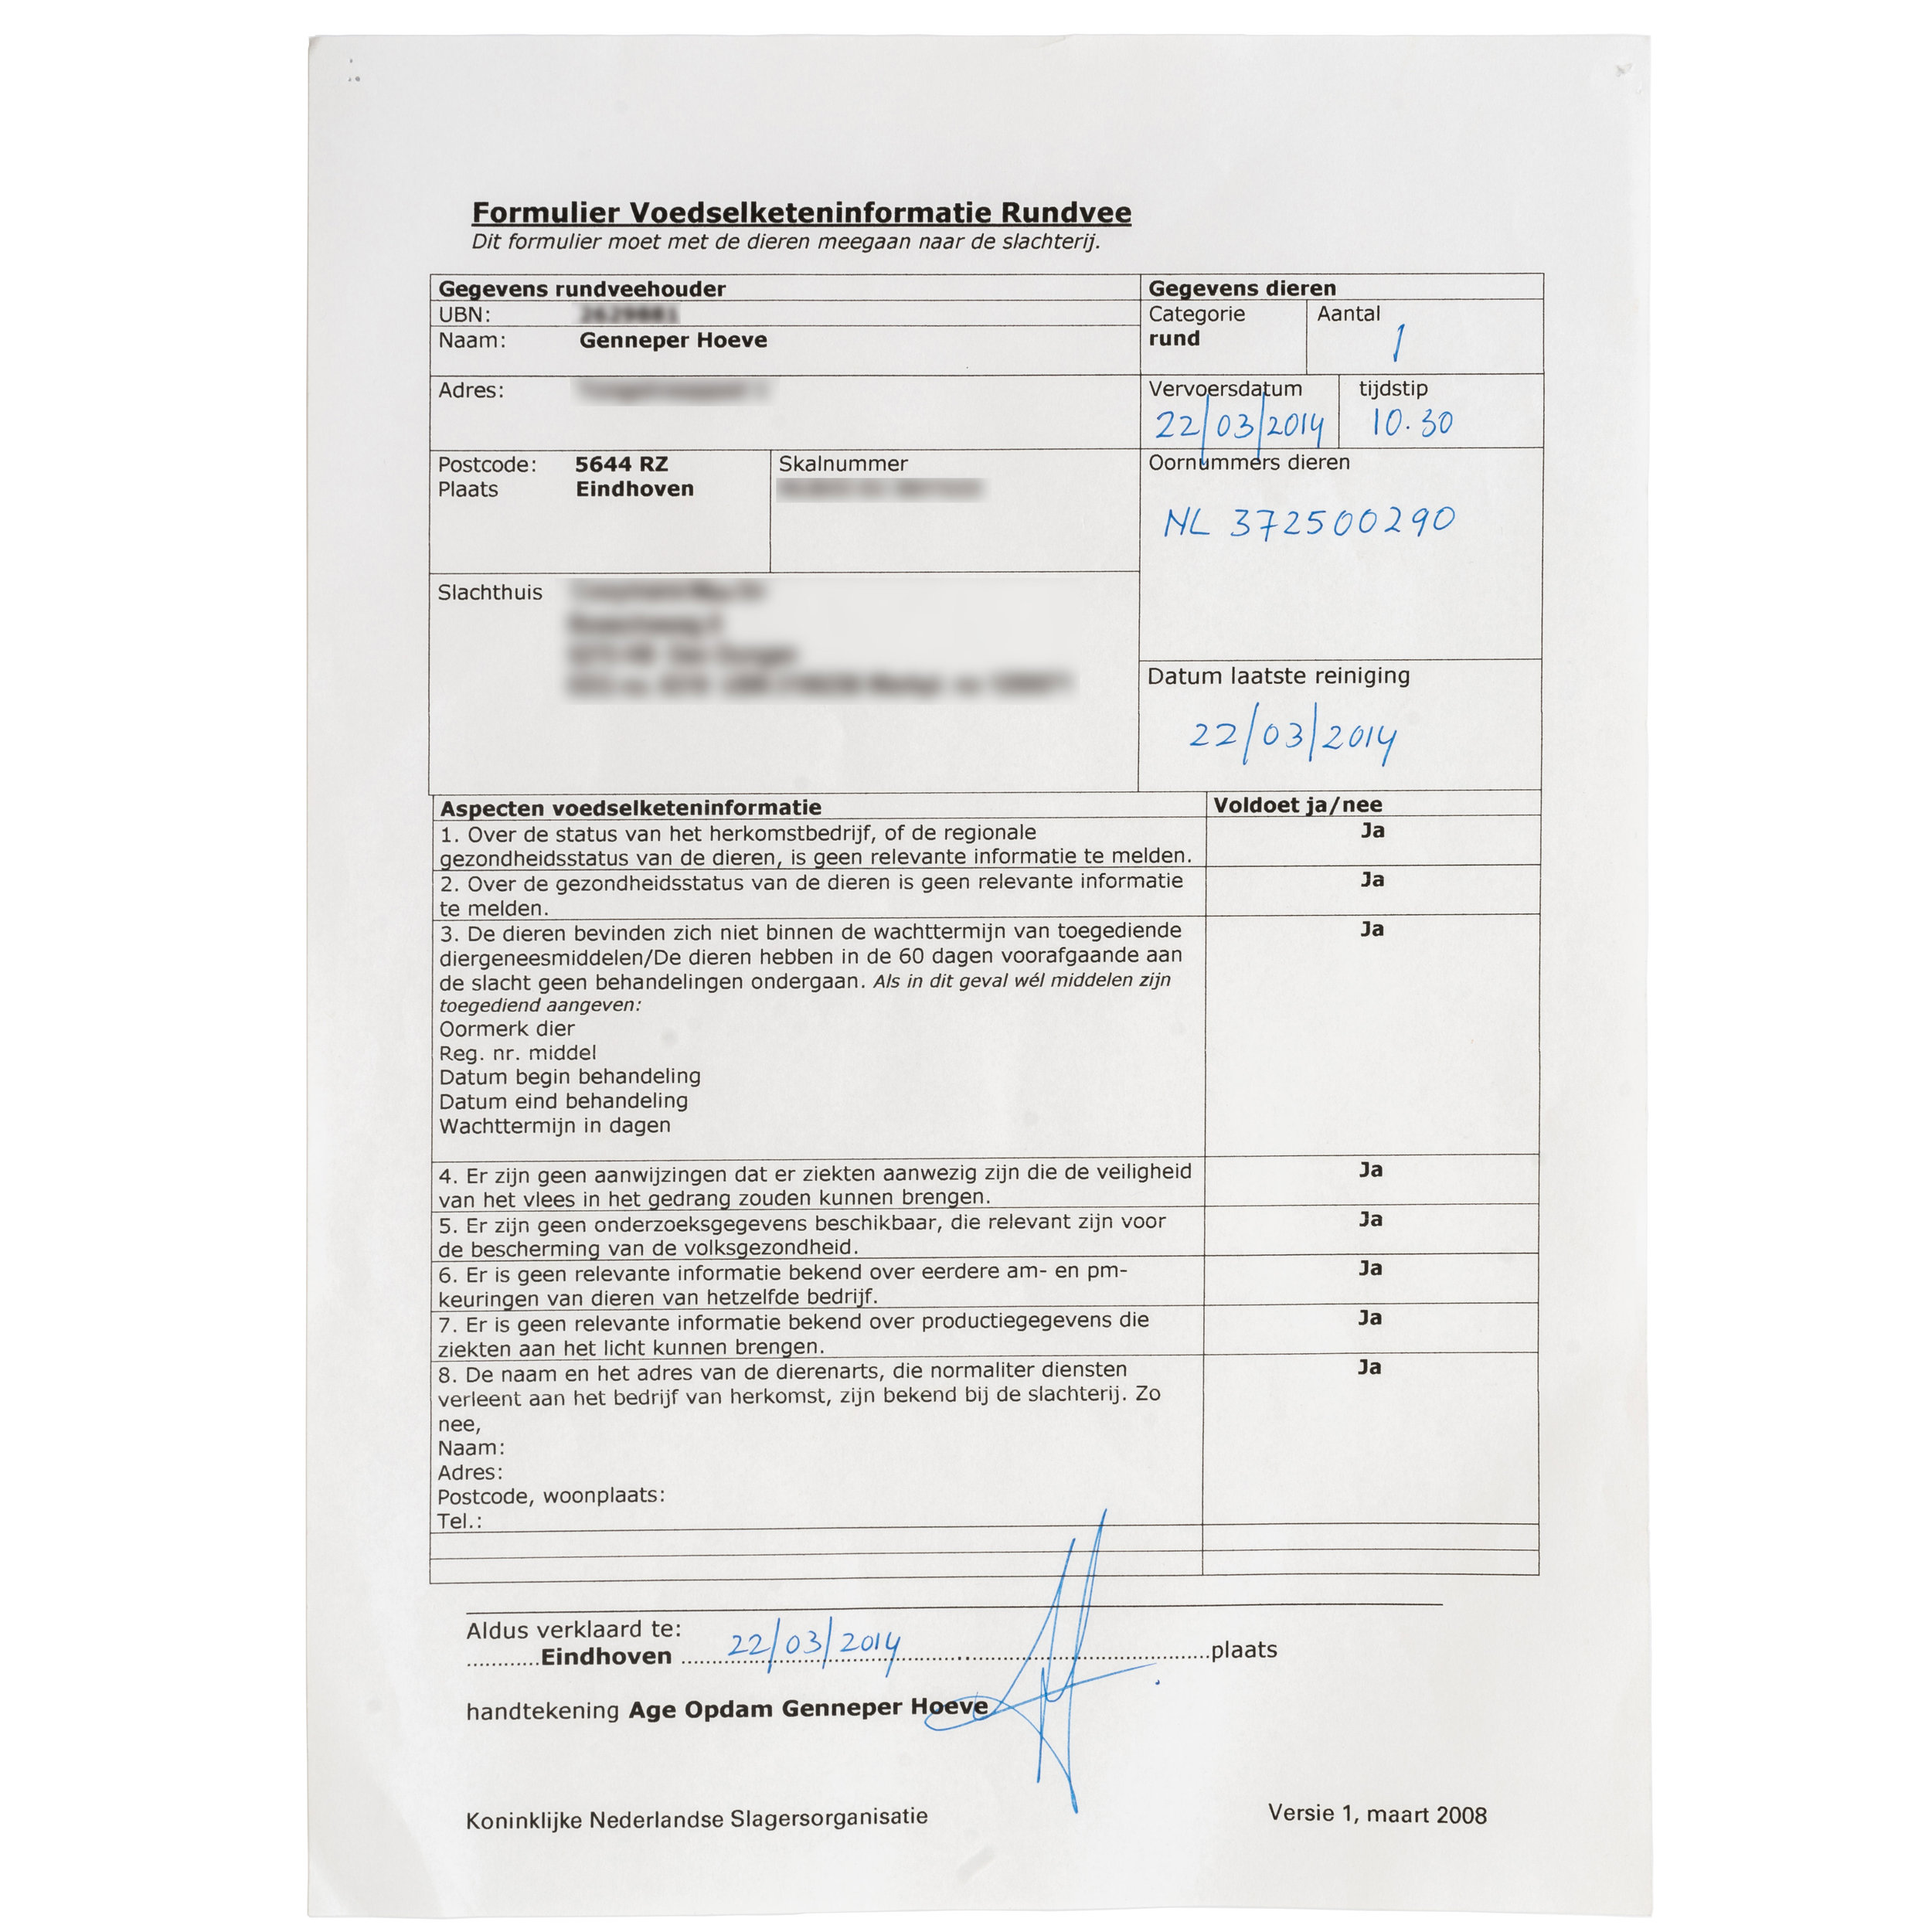 - Slaughter certificate (for Romie 18's sister Romie 13)A slaughter certificate which accompanies the cow to the slaughterhouse. Can be used to track the food chain information like details of the cow, farmer and slaughterhouse